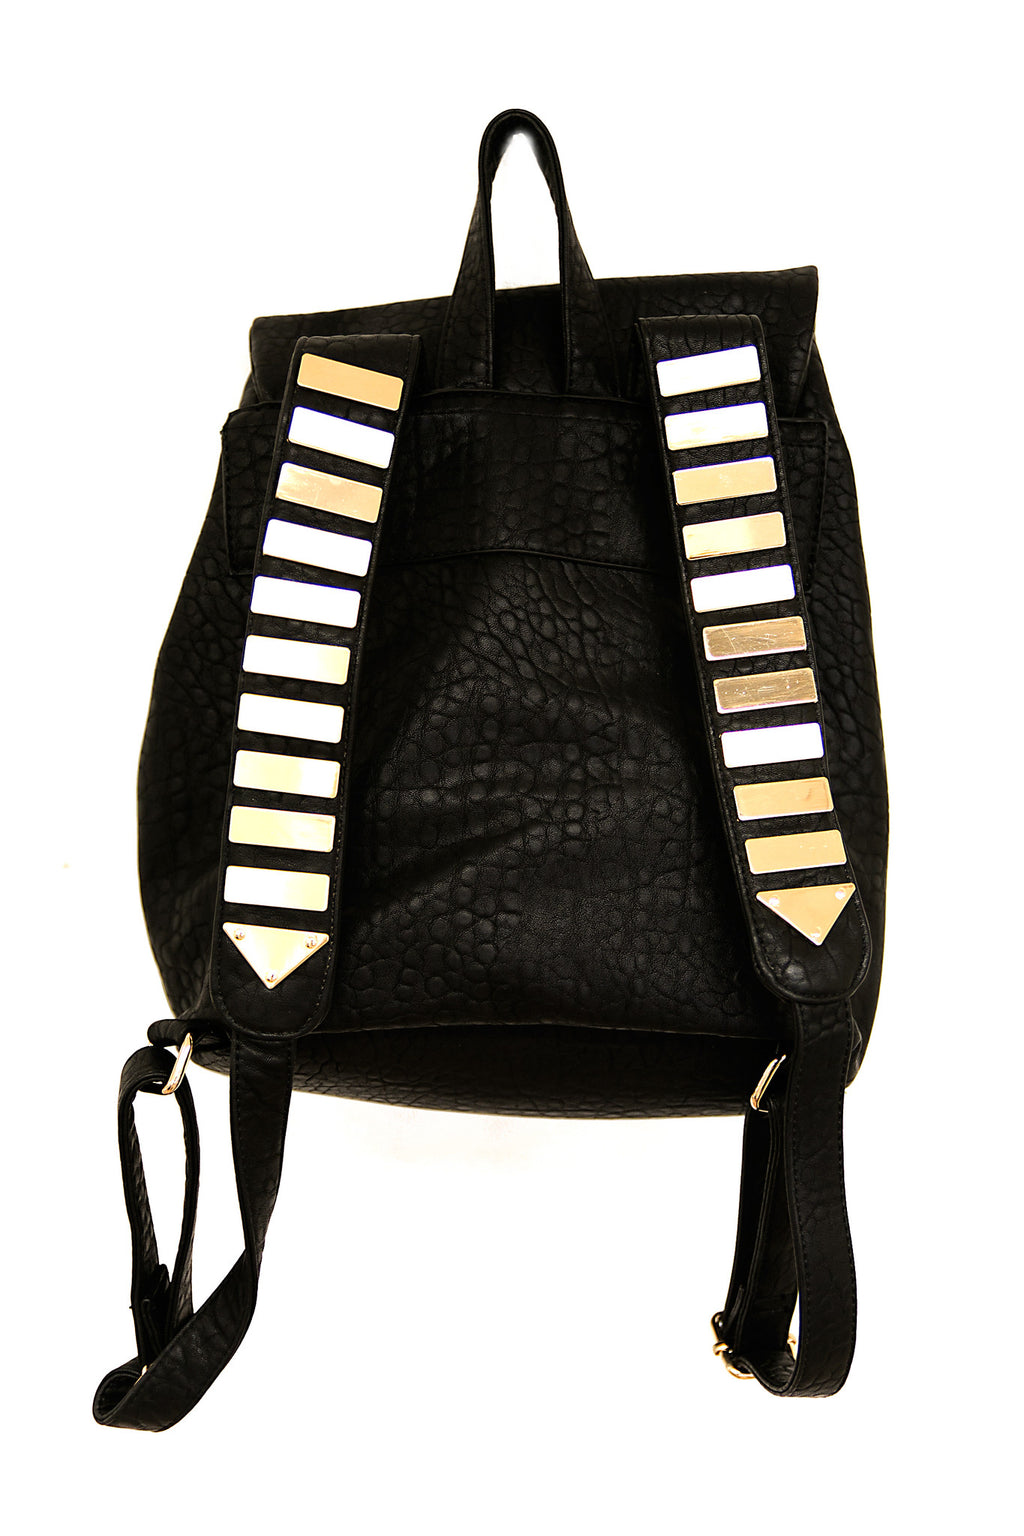 RIFT GOLD PLATED STRAP BACKPACK - Haute & Rebellious